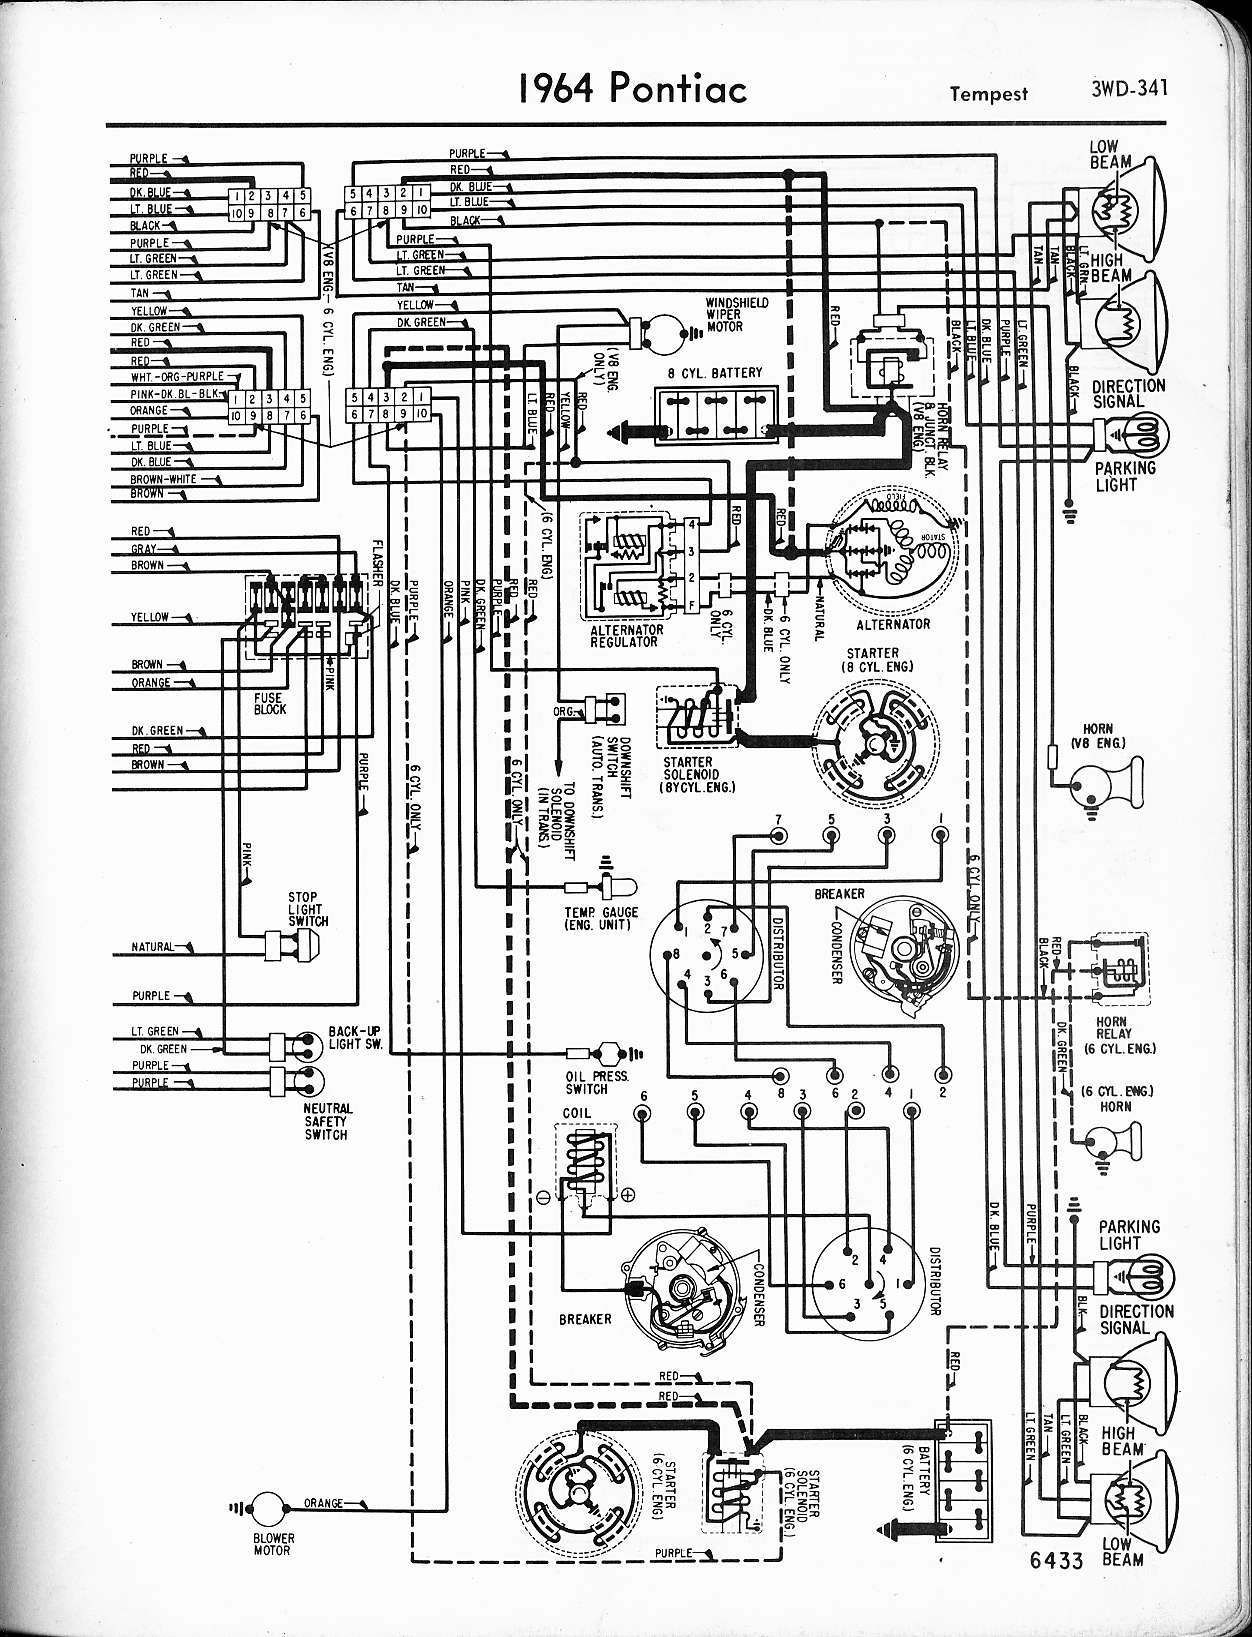 [WRG-2891] 66 Gto Engine Wiring Diagram